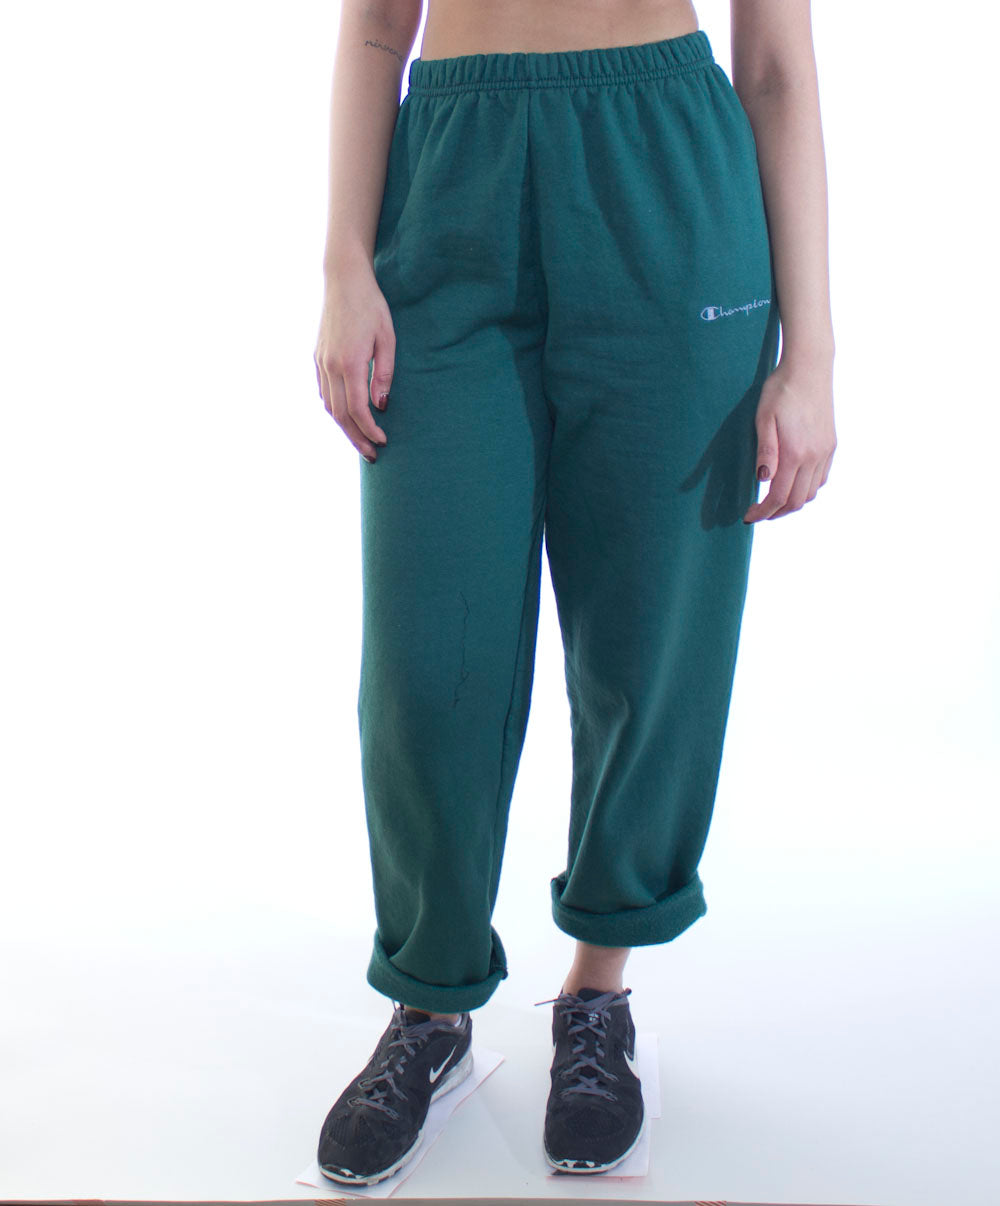 Green Champion Sweatpants